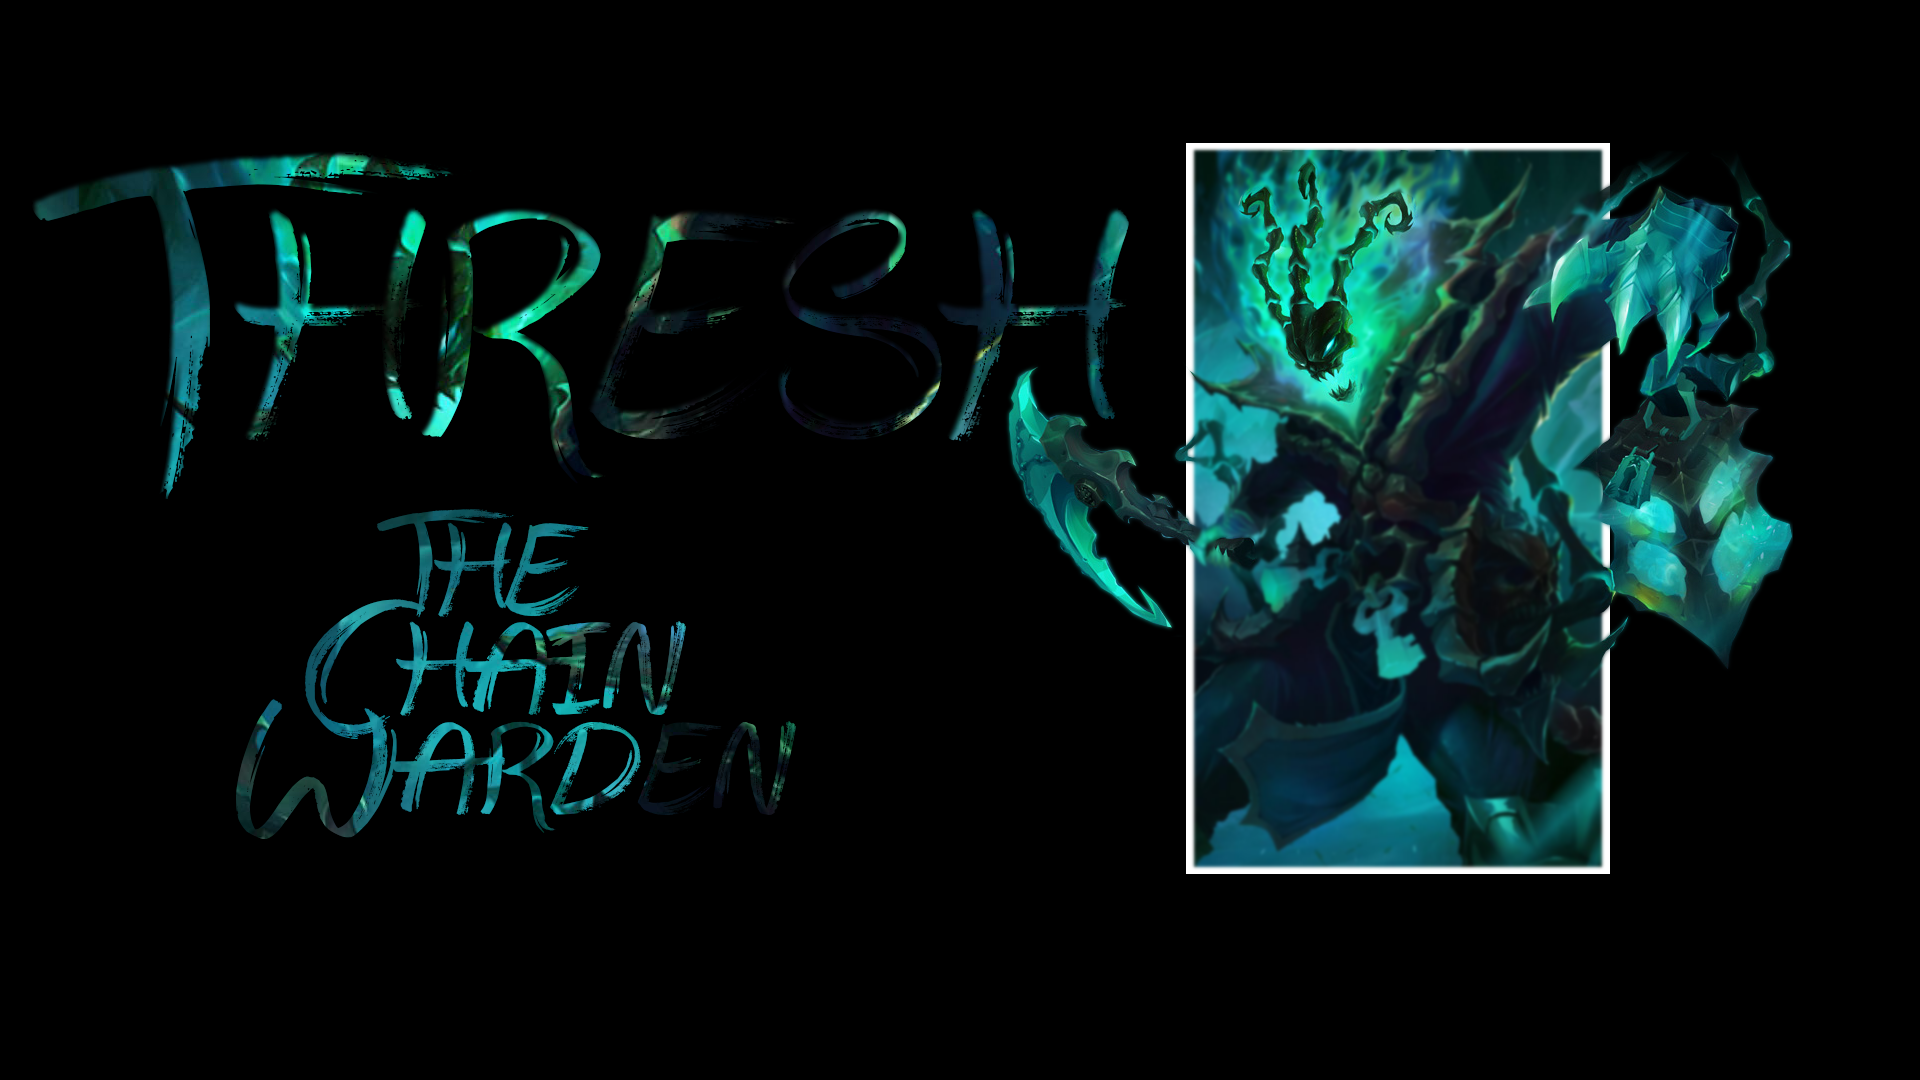 Tresh wallpaper